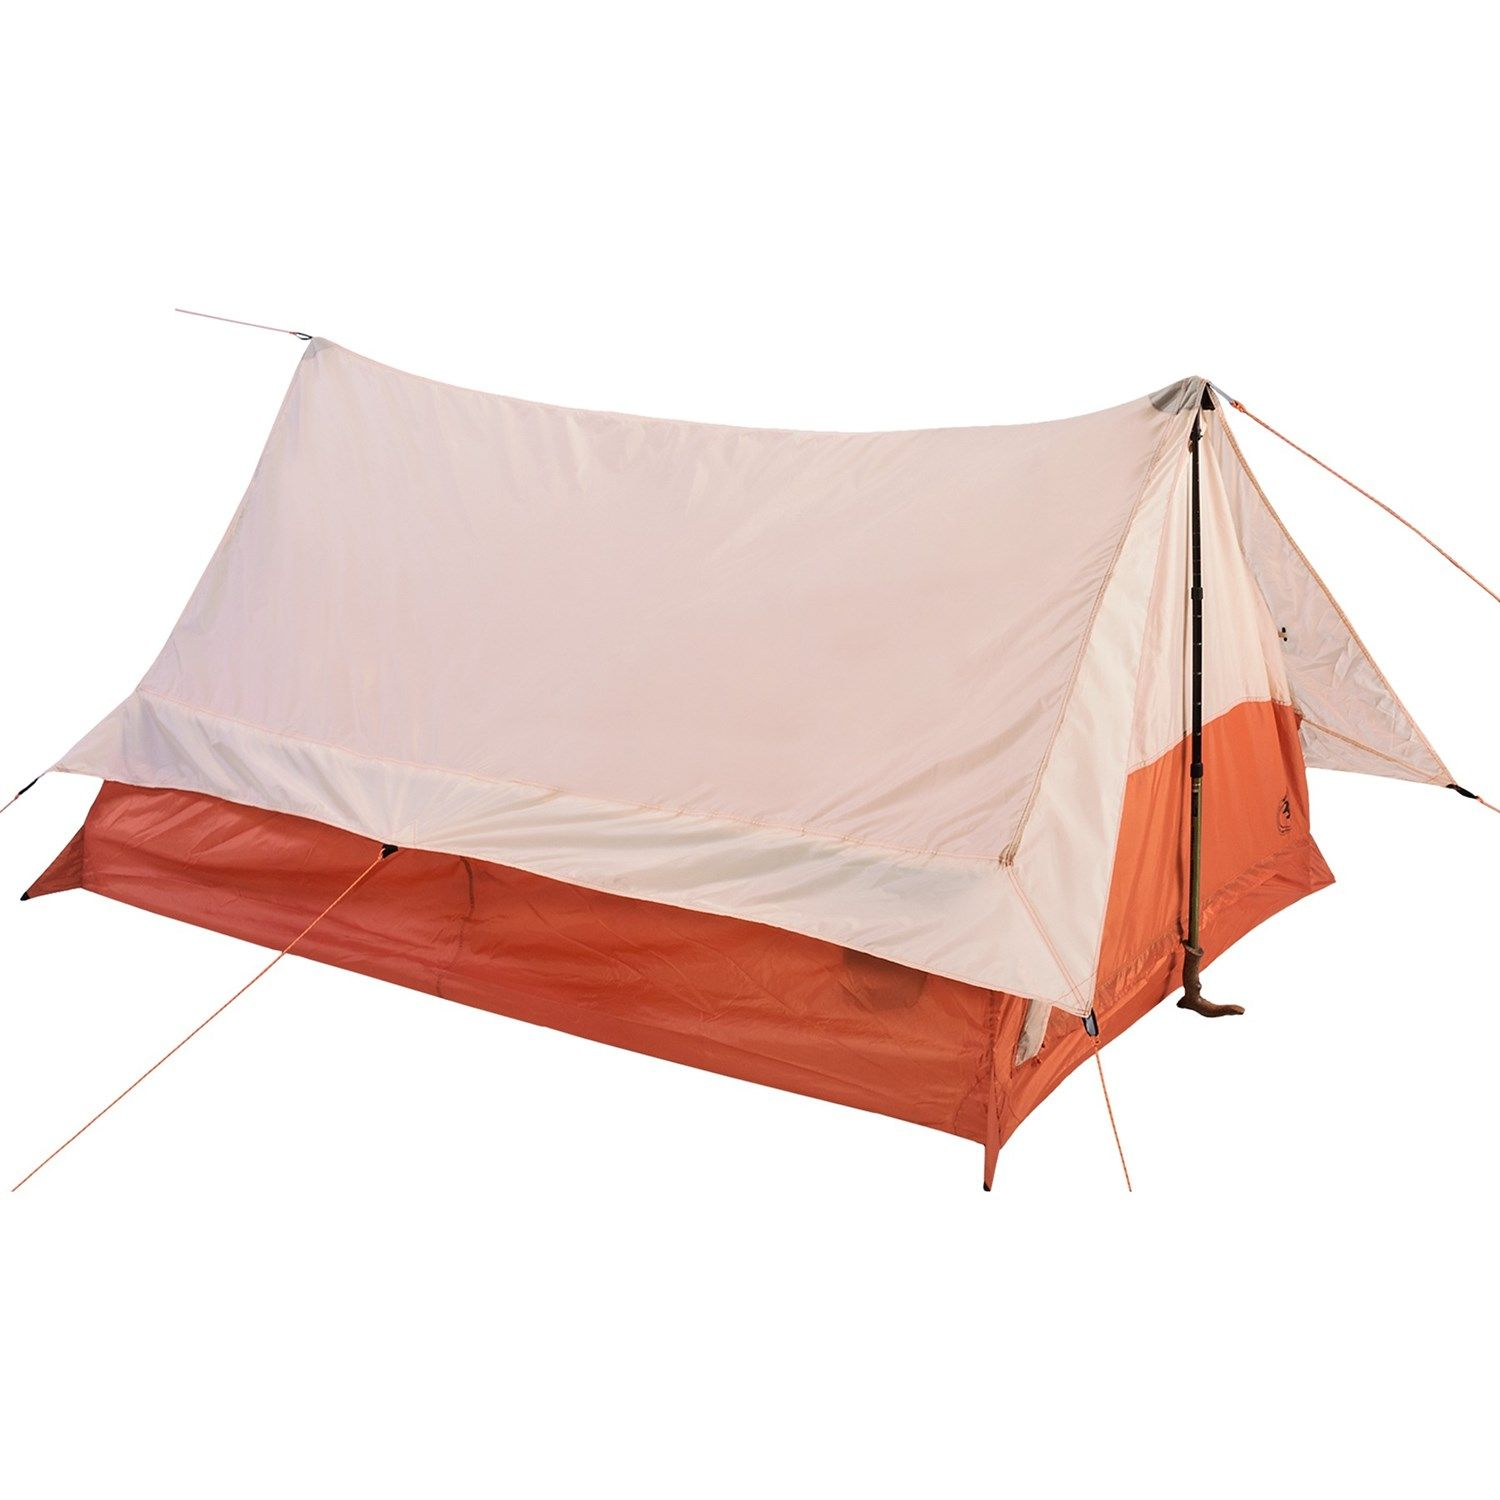 Big Agnes Pioneer 2 Tent with Footprint - 2-Person 3-Season  sc 1 st  Pinterest & Big Agnes Pioneer 2 Tent with Footprint - 2-Person 3-Season | Tents